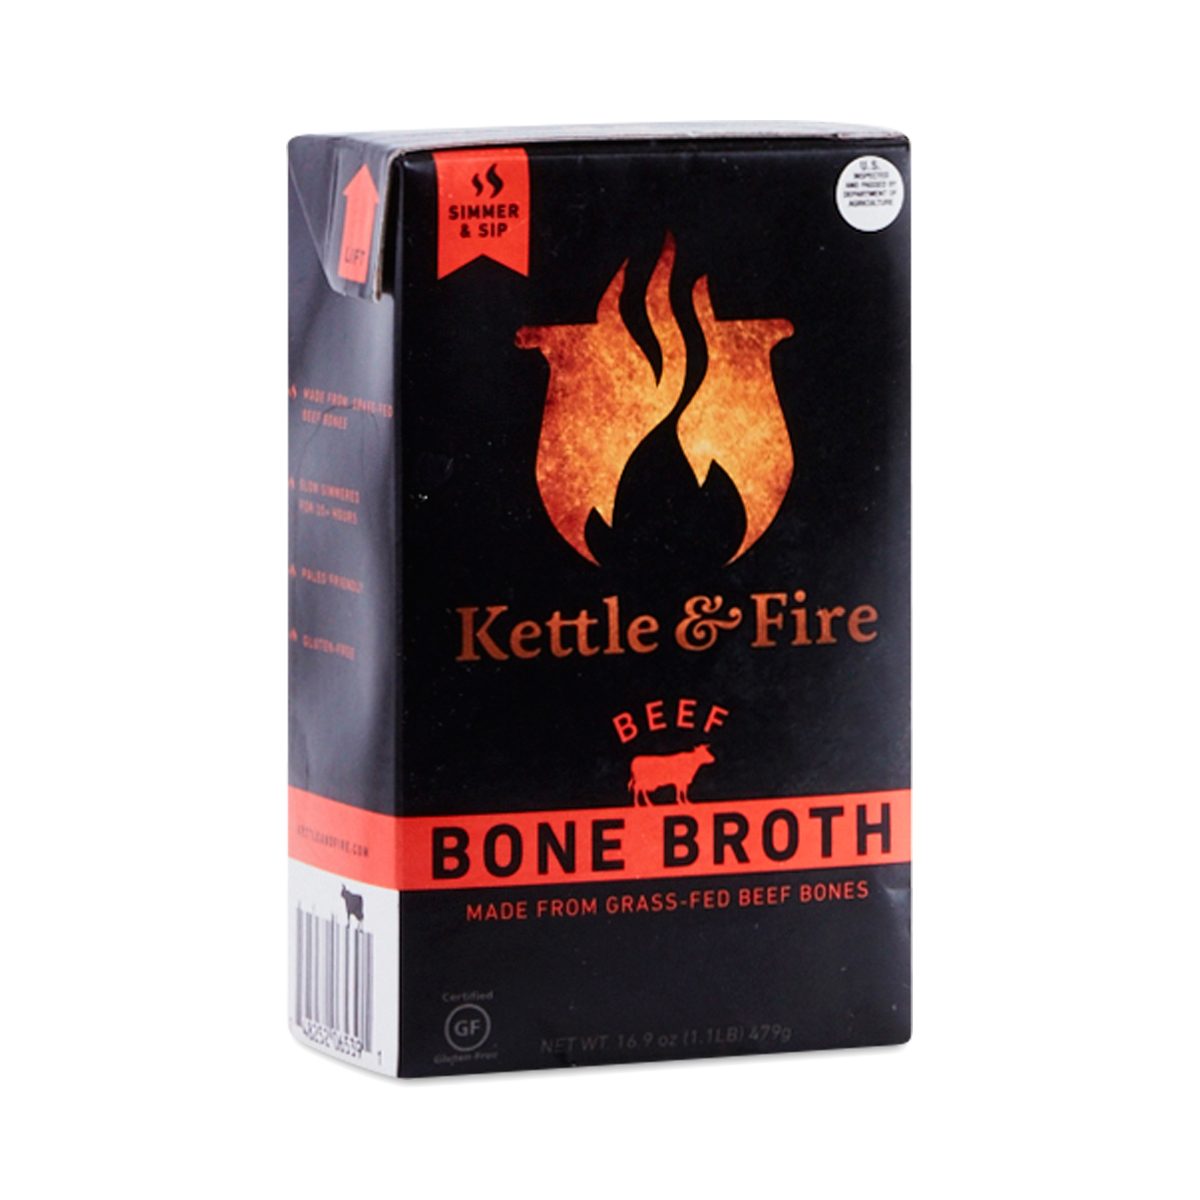 Picture of a carton of Kettle and Fire Bone Broth